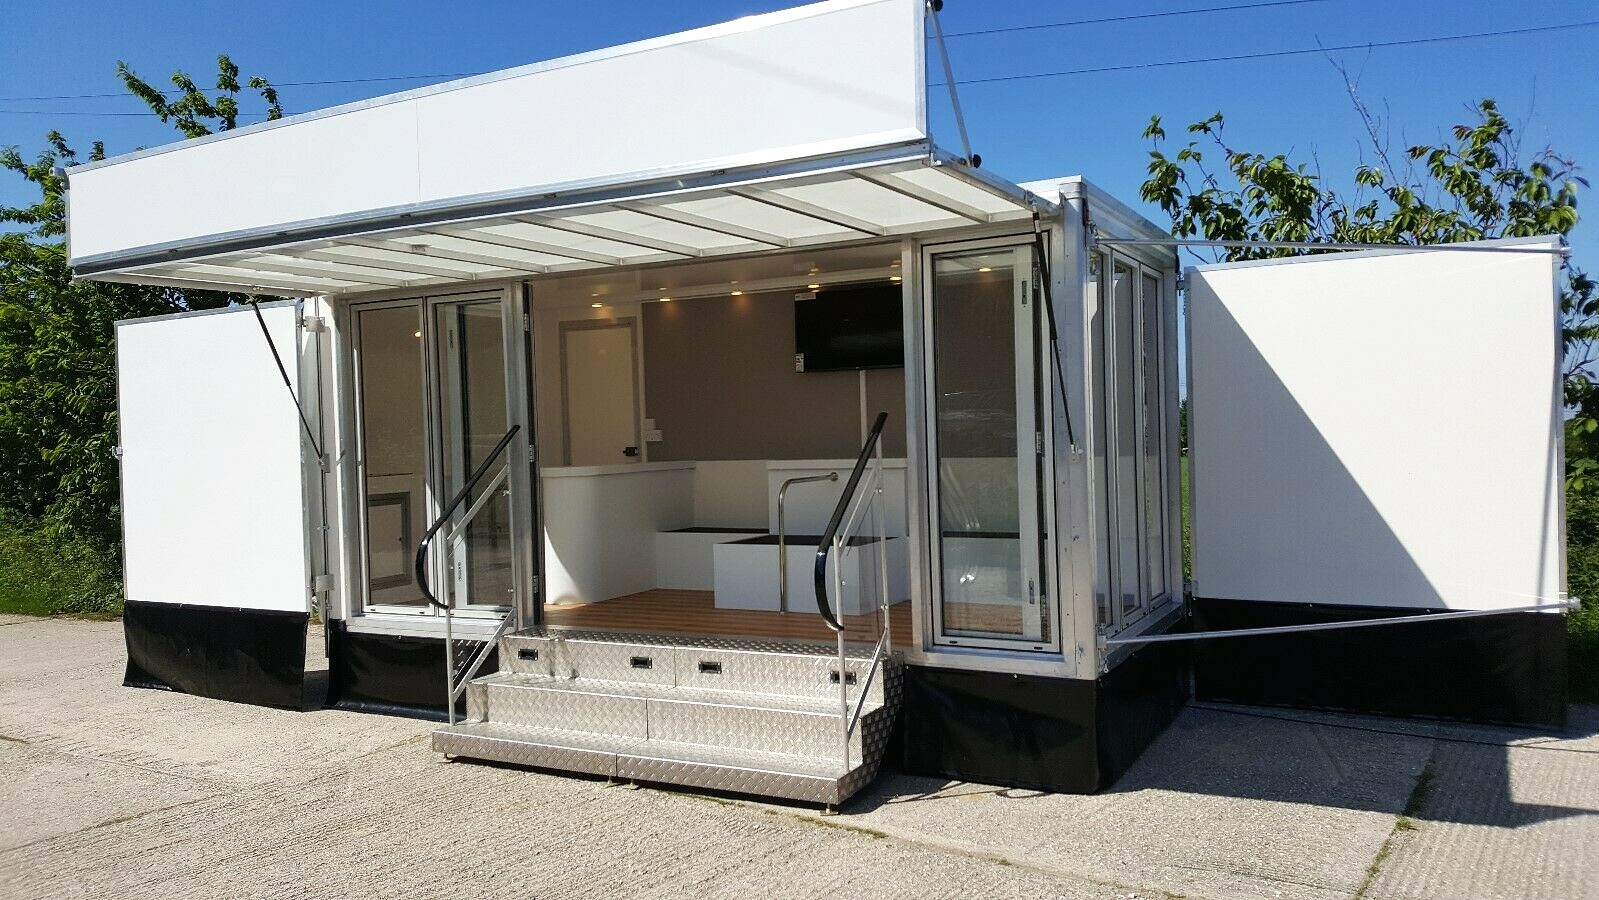 Exhibition trailer | retro catering vehicle  | event display mobile